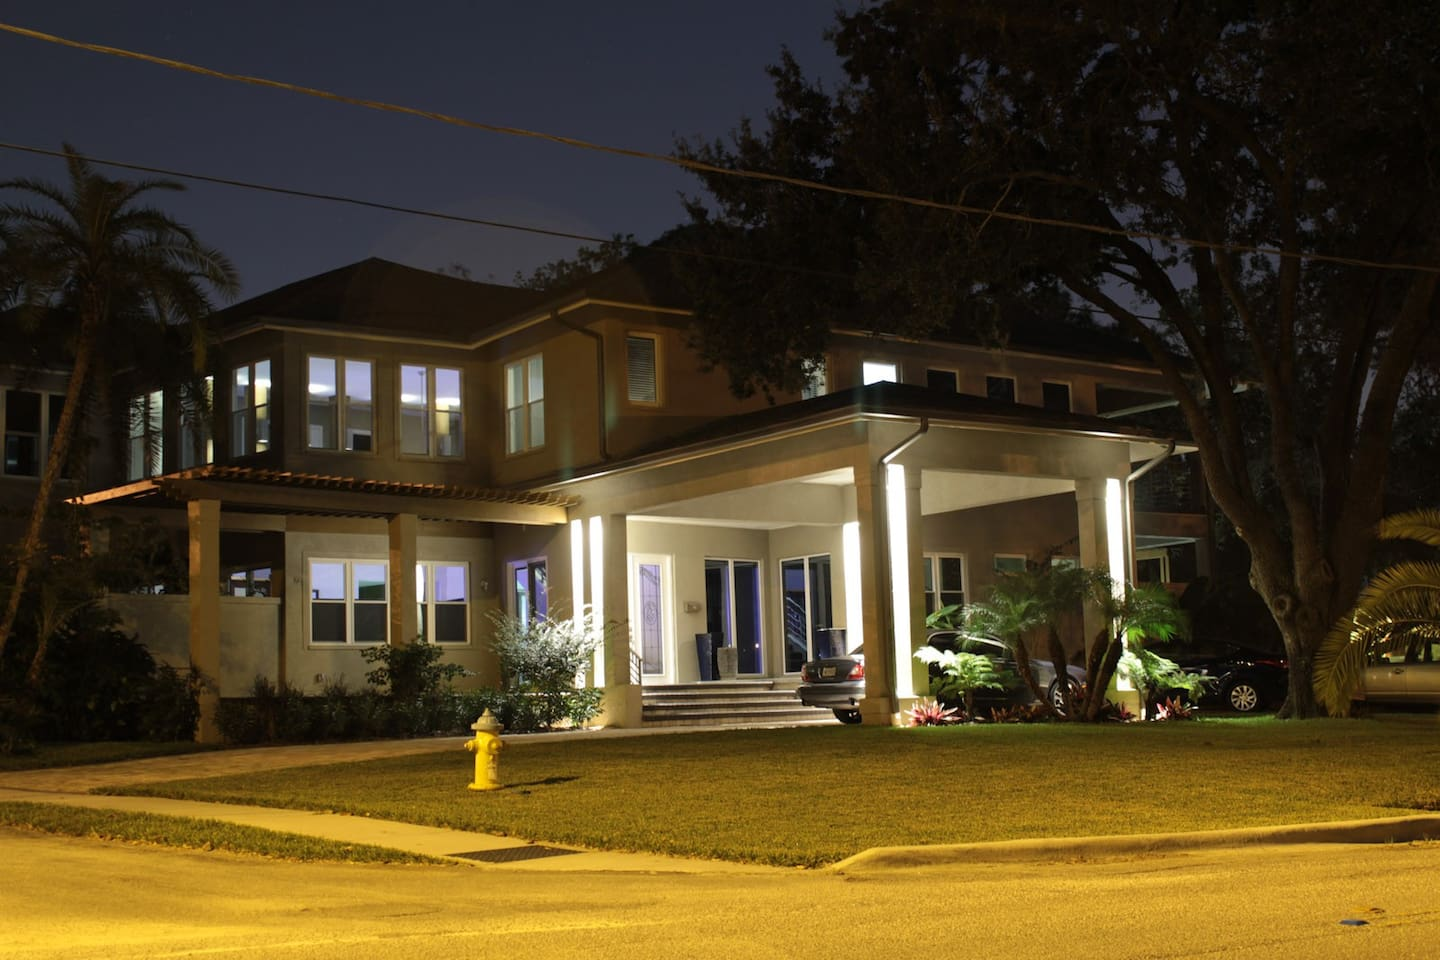 VIEW OF THE HOUSE AT NIGHT